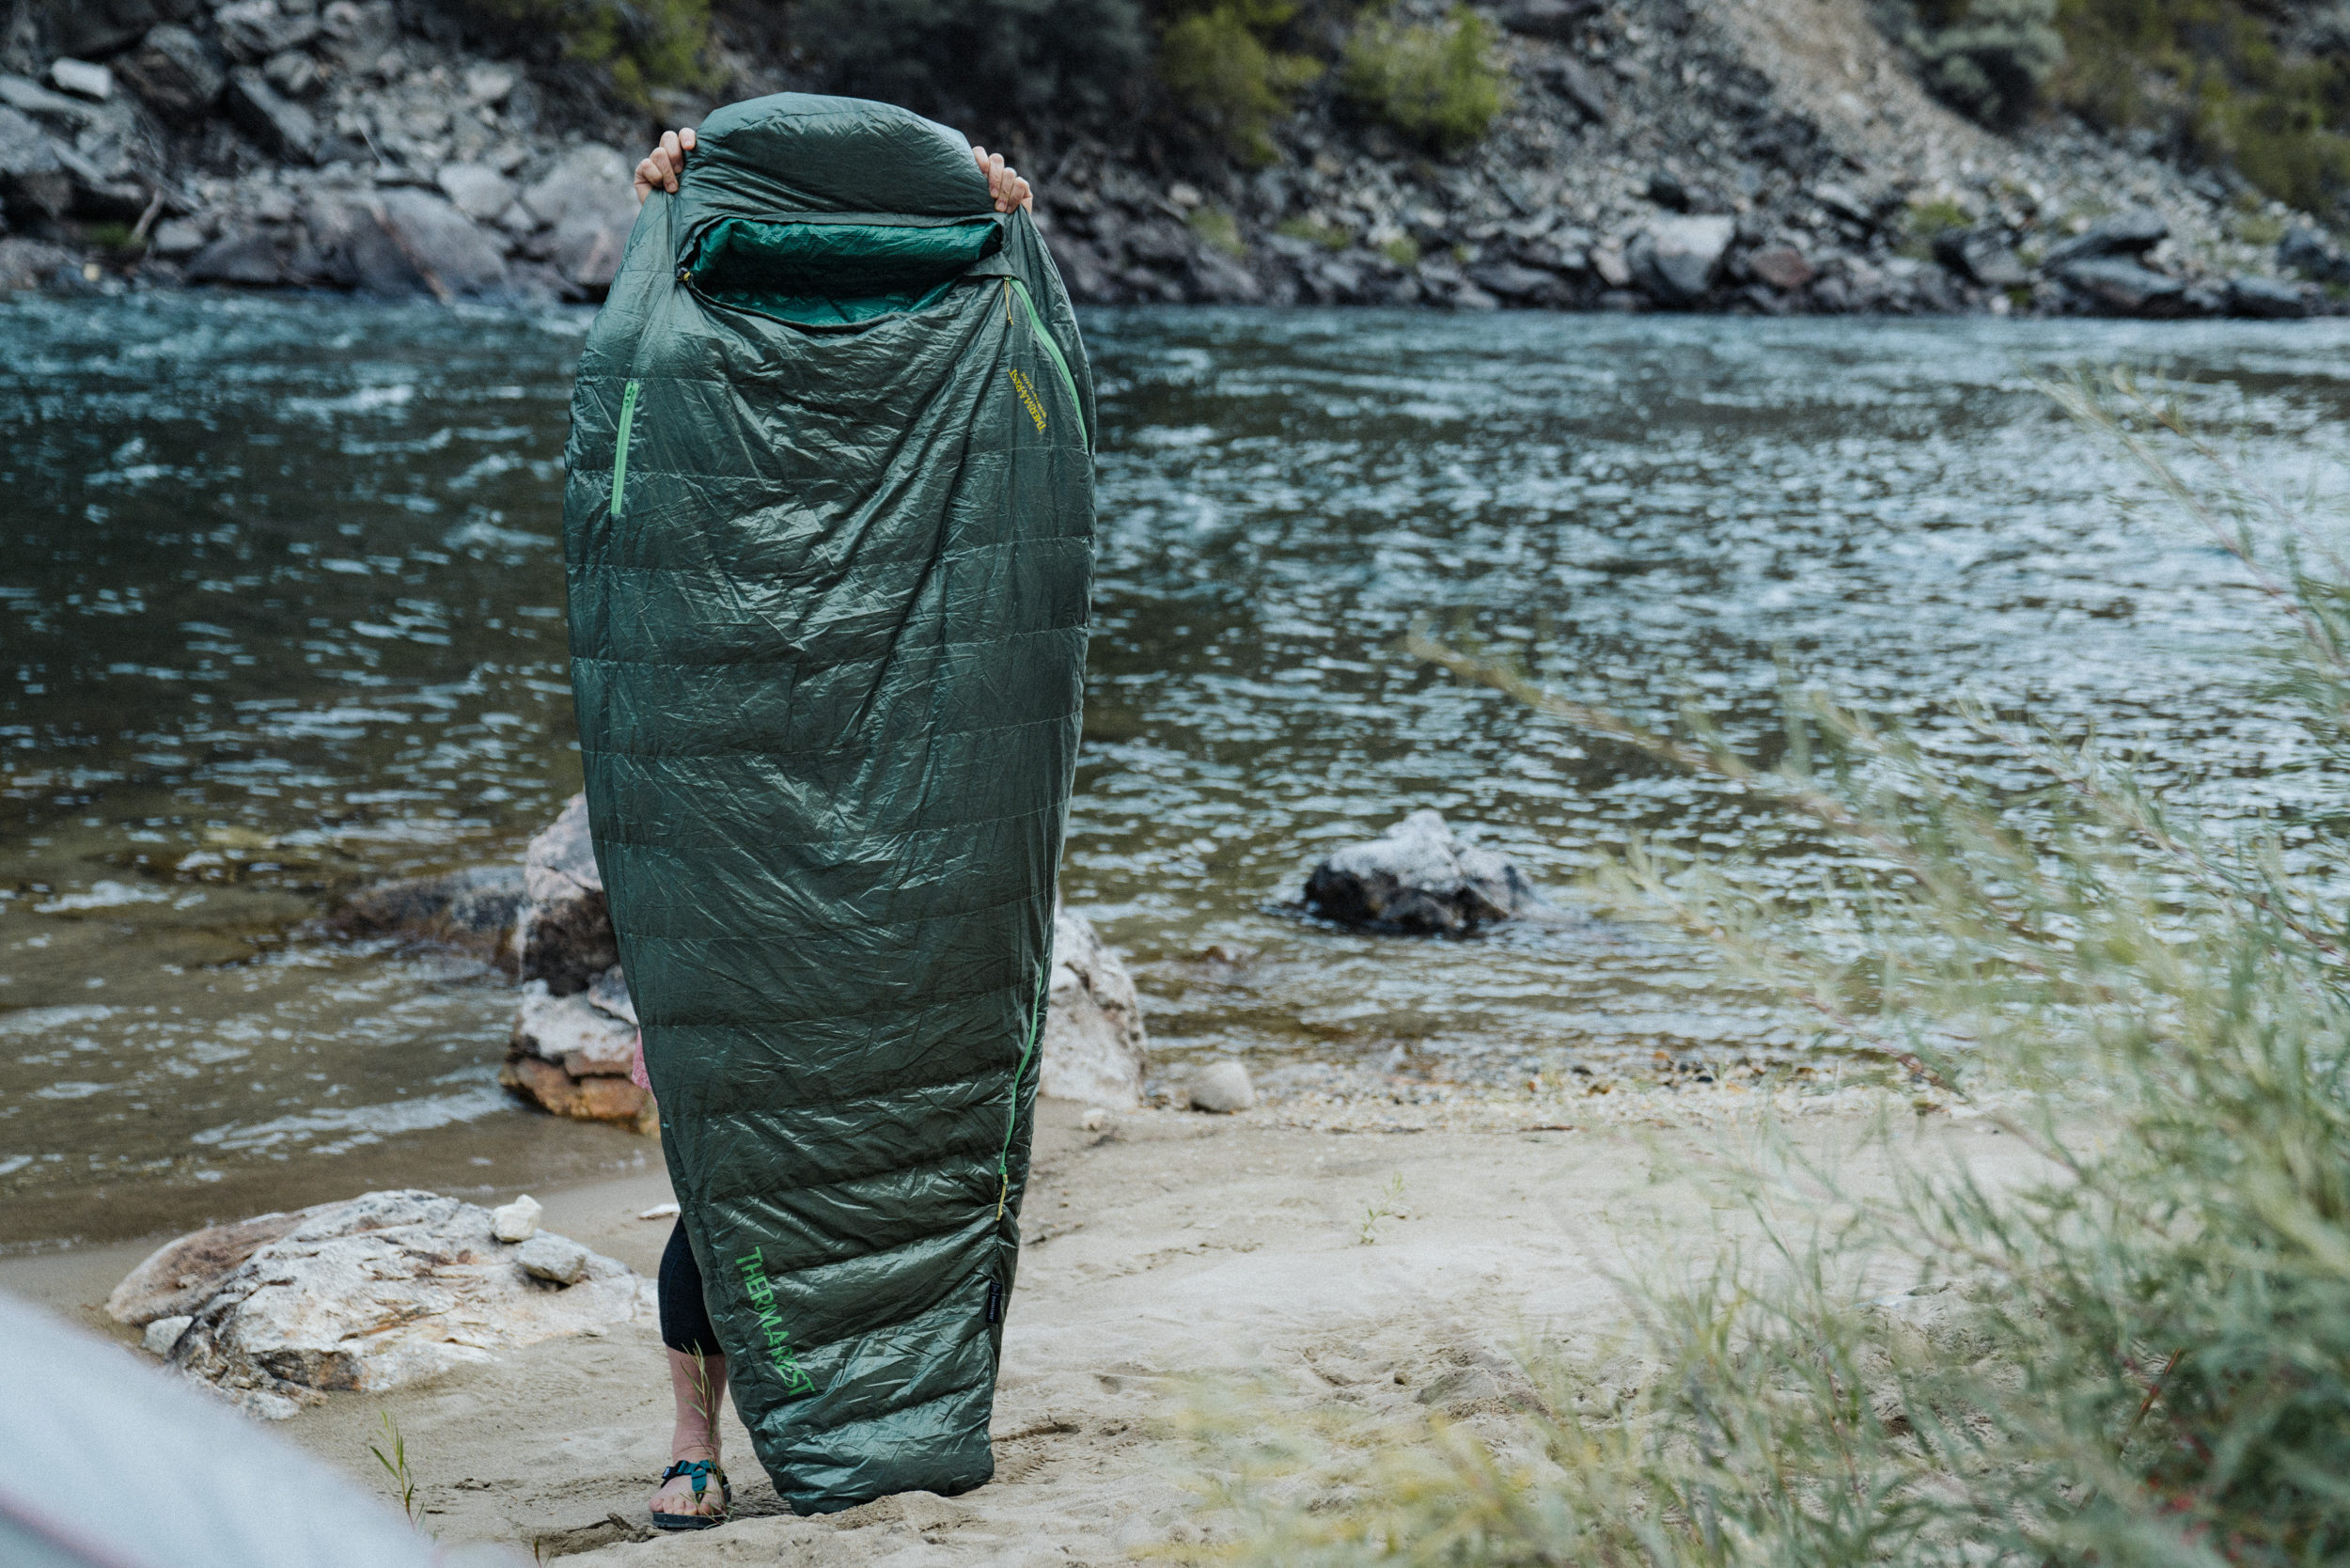 Packlist: Gear we loved for a 3-day rafting adventure on the Salmon River in Idaho